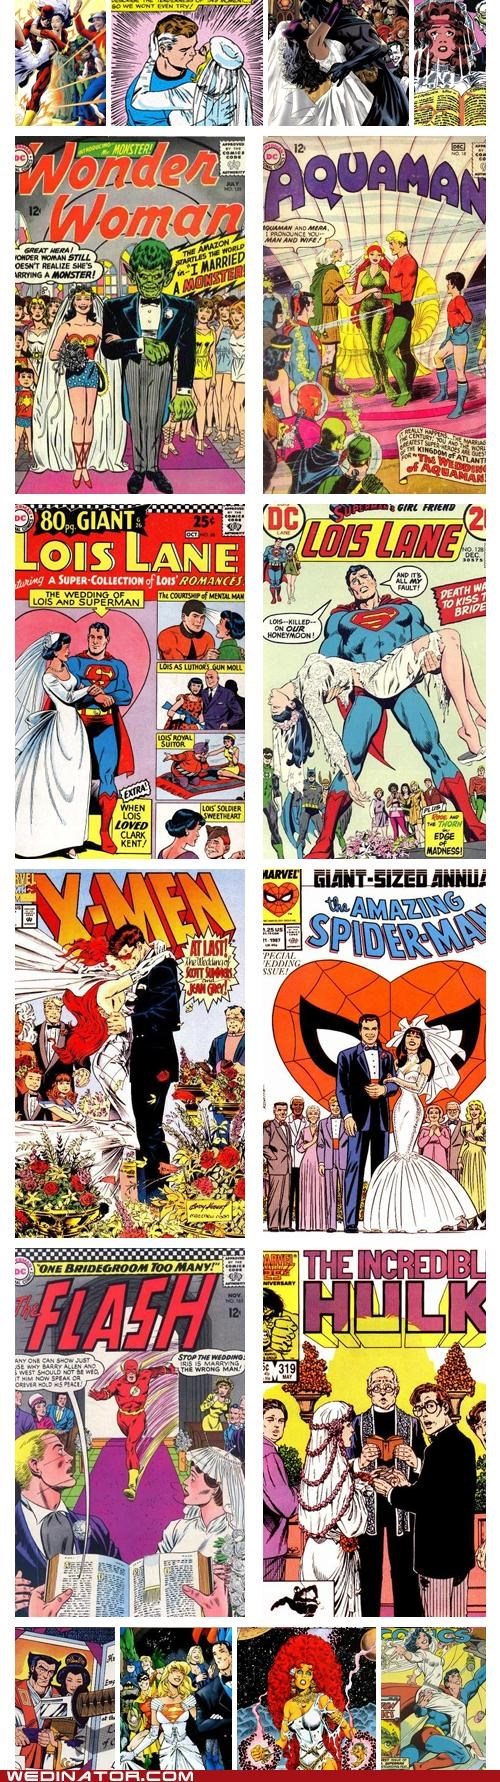 batman comic books comics funny wedding photos Hall of Fame Spider-Man superheroes superman x men - 5278157312